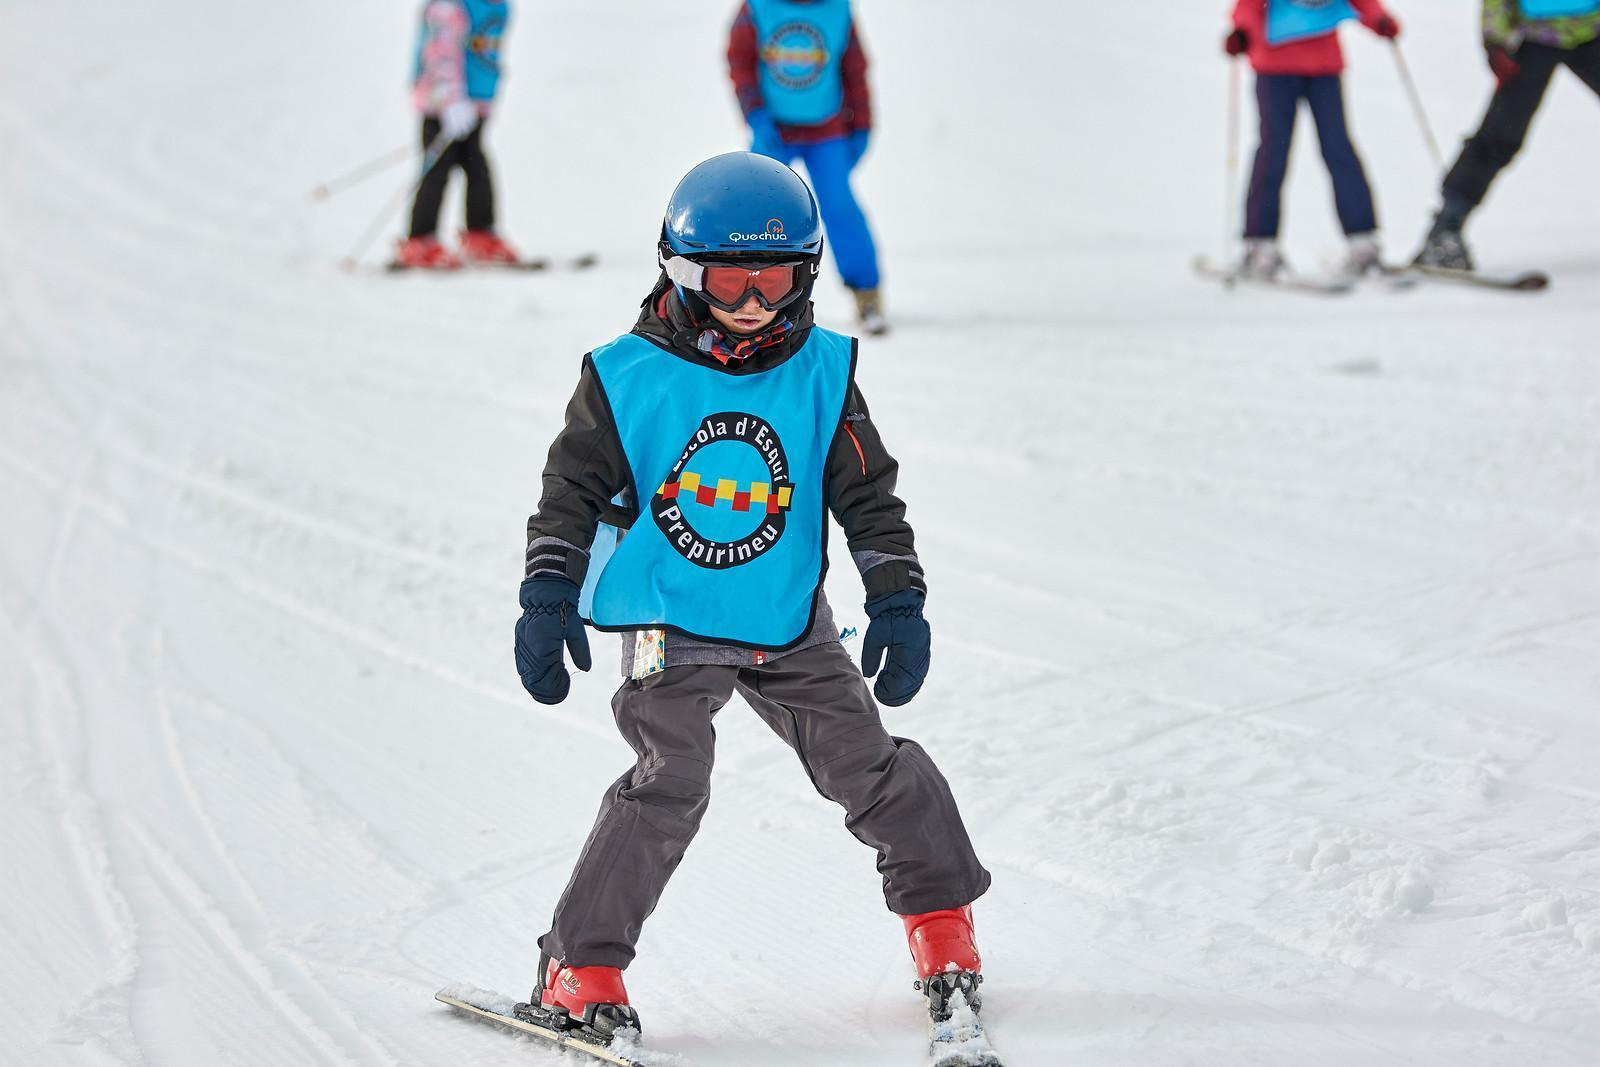 Initiation ski class (between 4 and 6 years old) in Tavscan